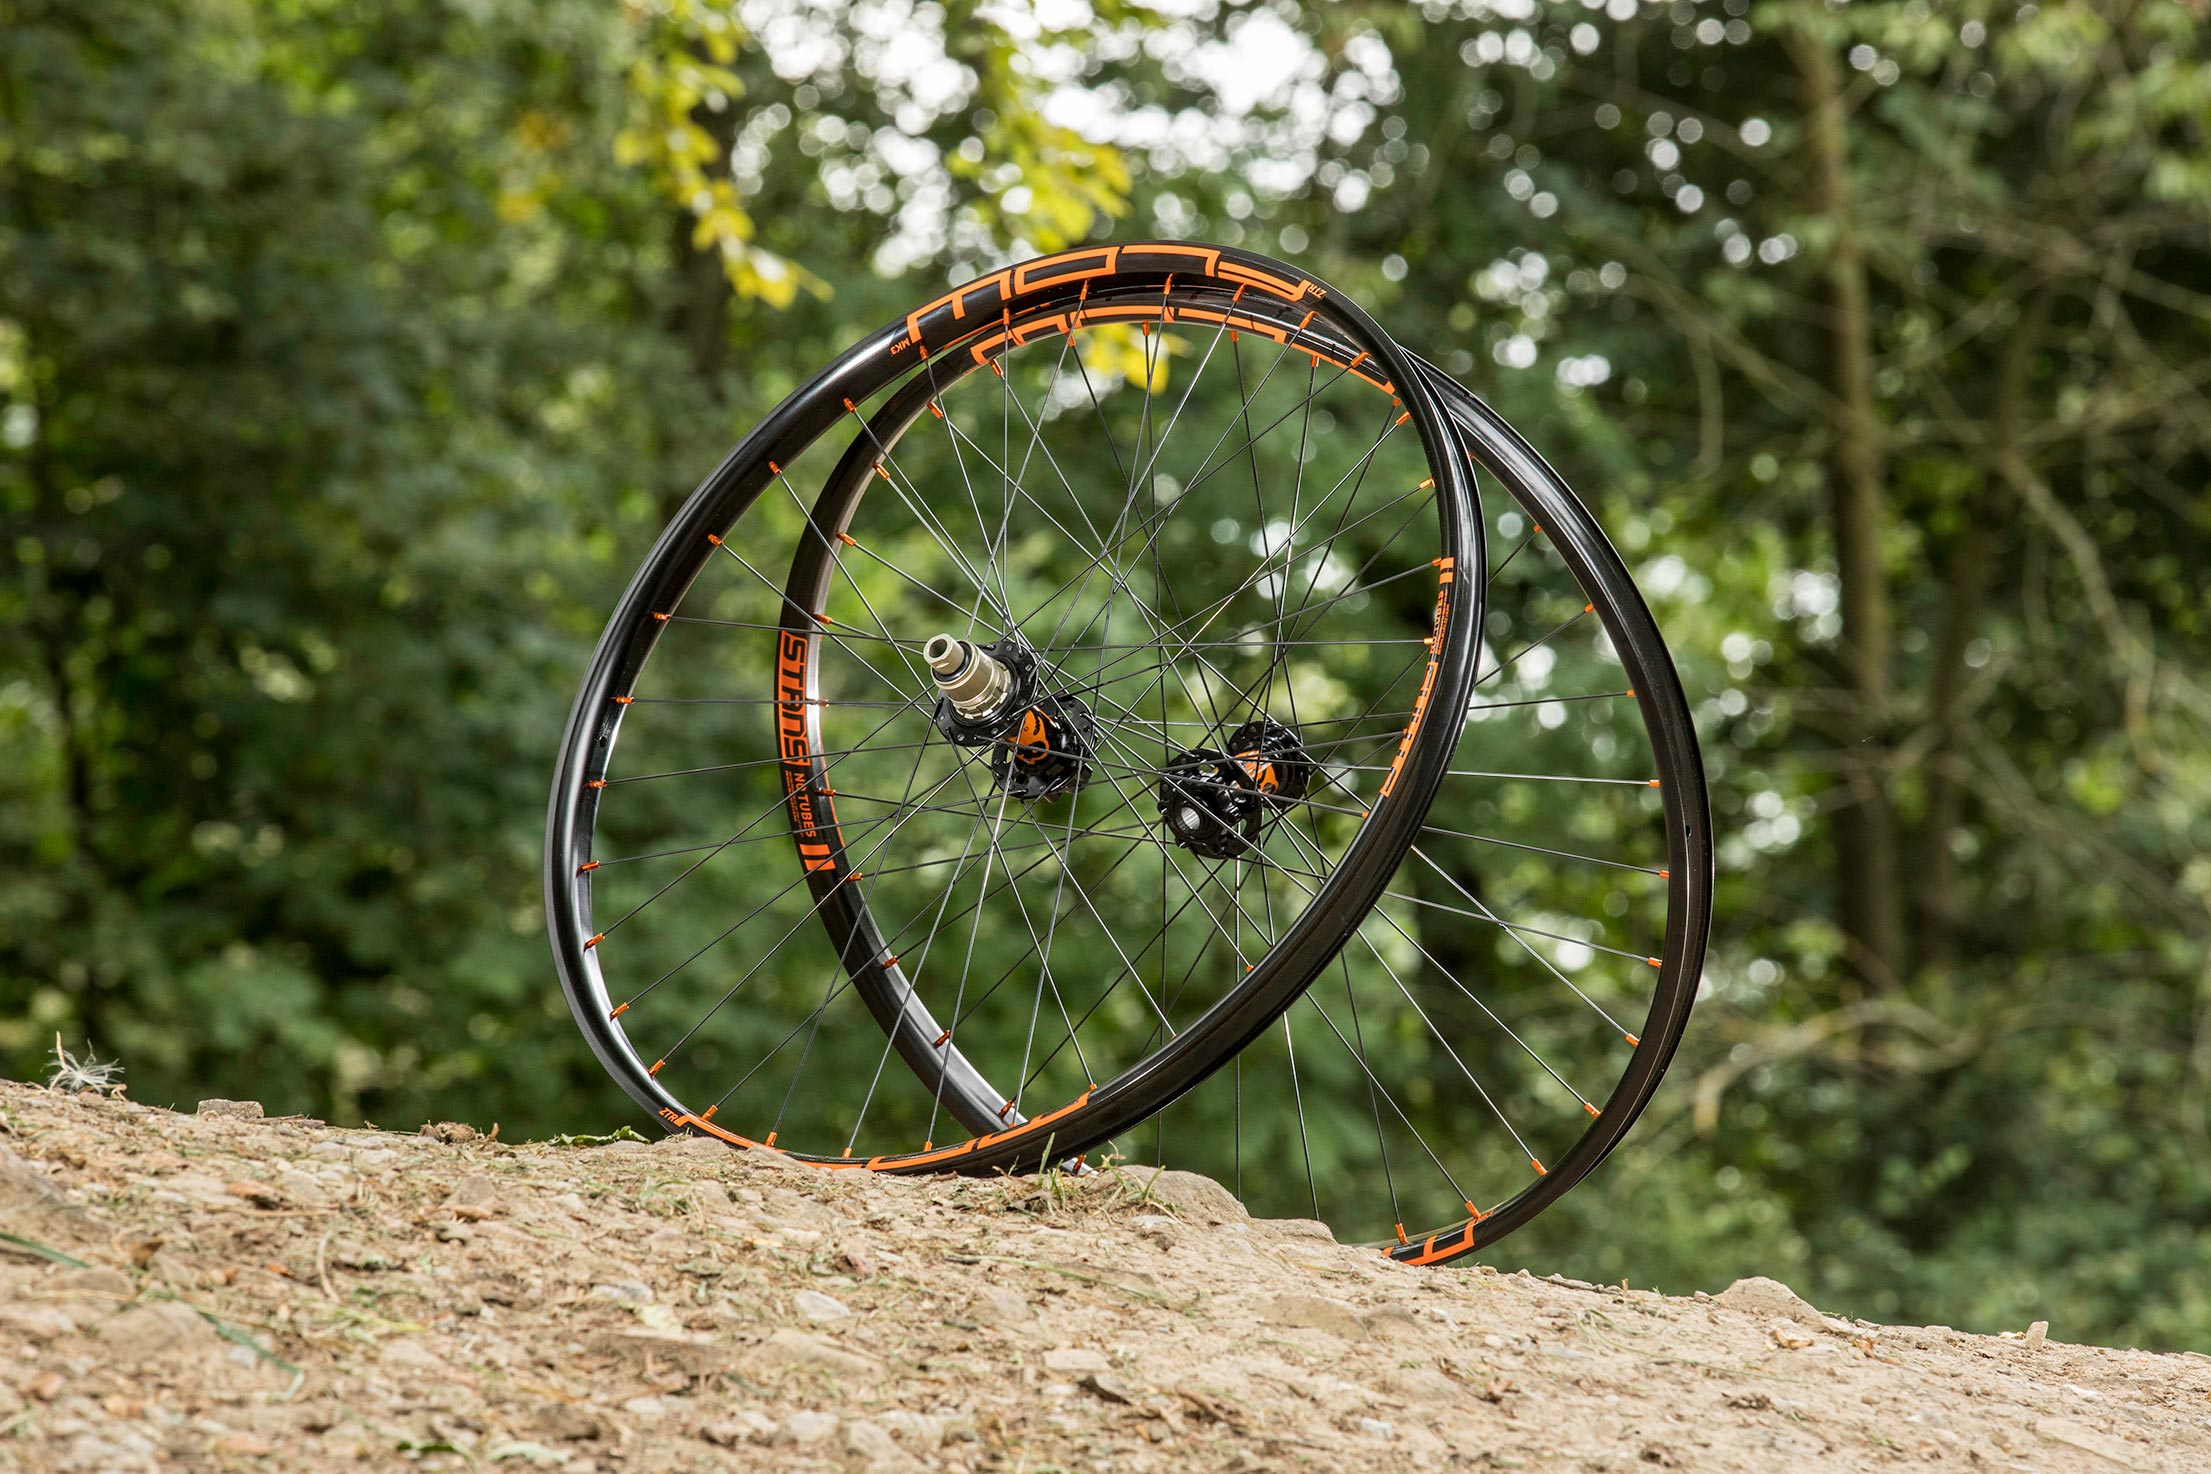 JRA's Stan's NoTubes Flow MK3 Traildog wheels are impeccably hand-built, dynamic and durable trail wheels at a killer price